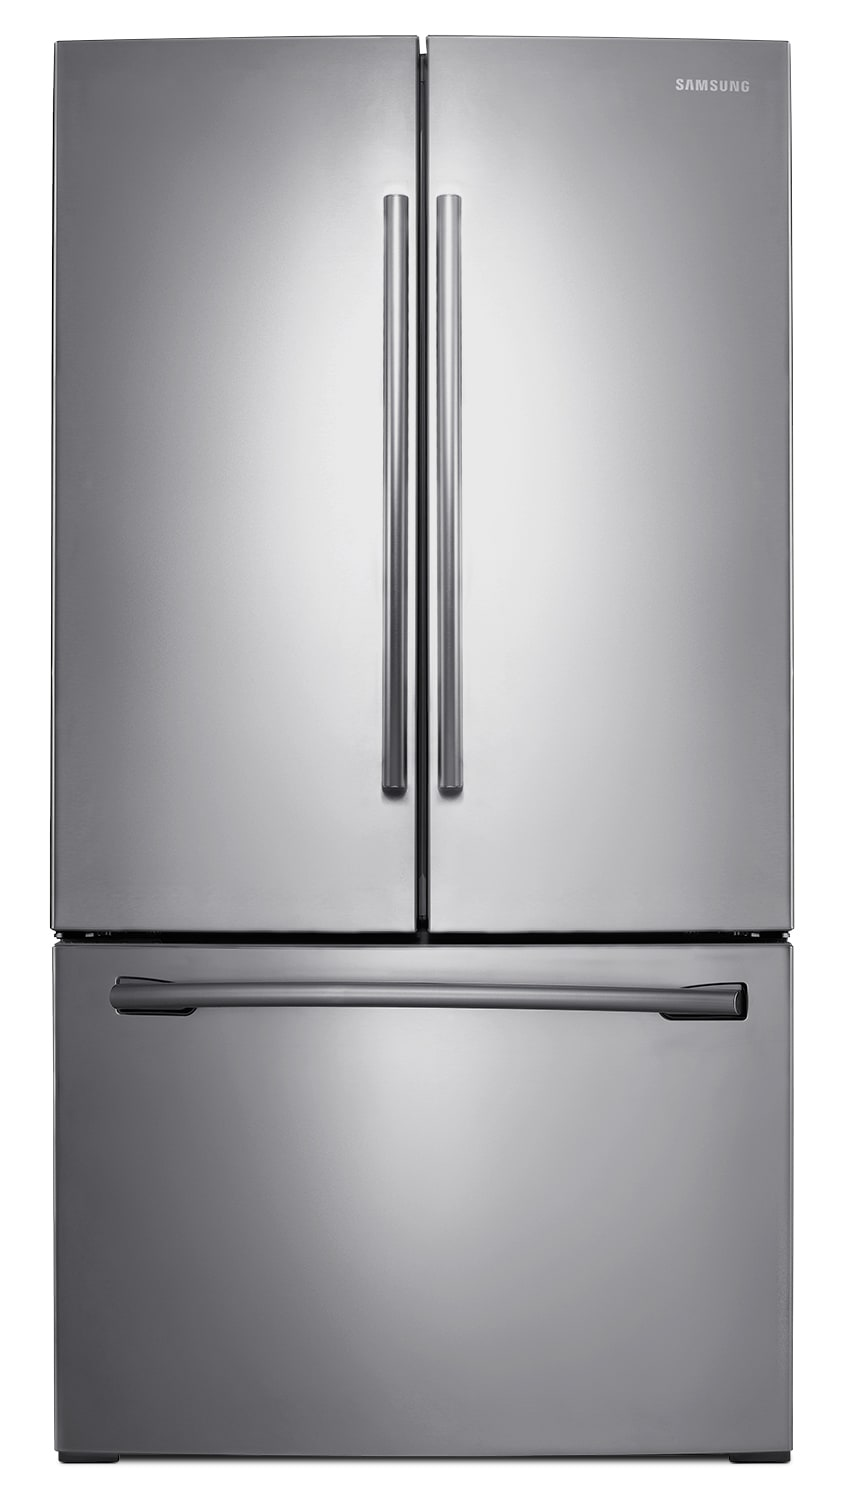 Refrigerators and Freezers - Samsung 25.7 Cu. Ft. French-Door Refrigerator – RF26HFENDSR/AA